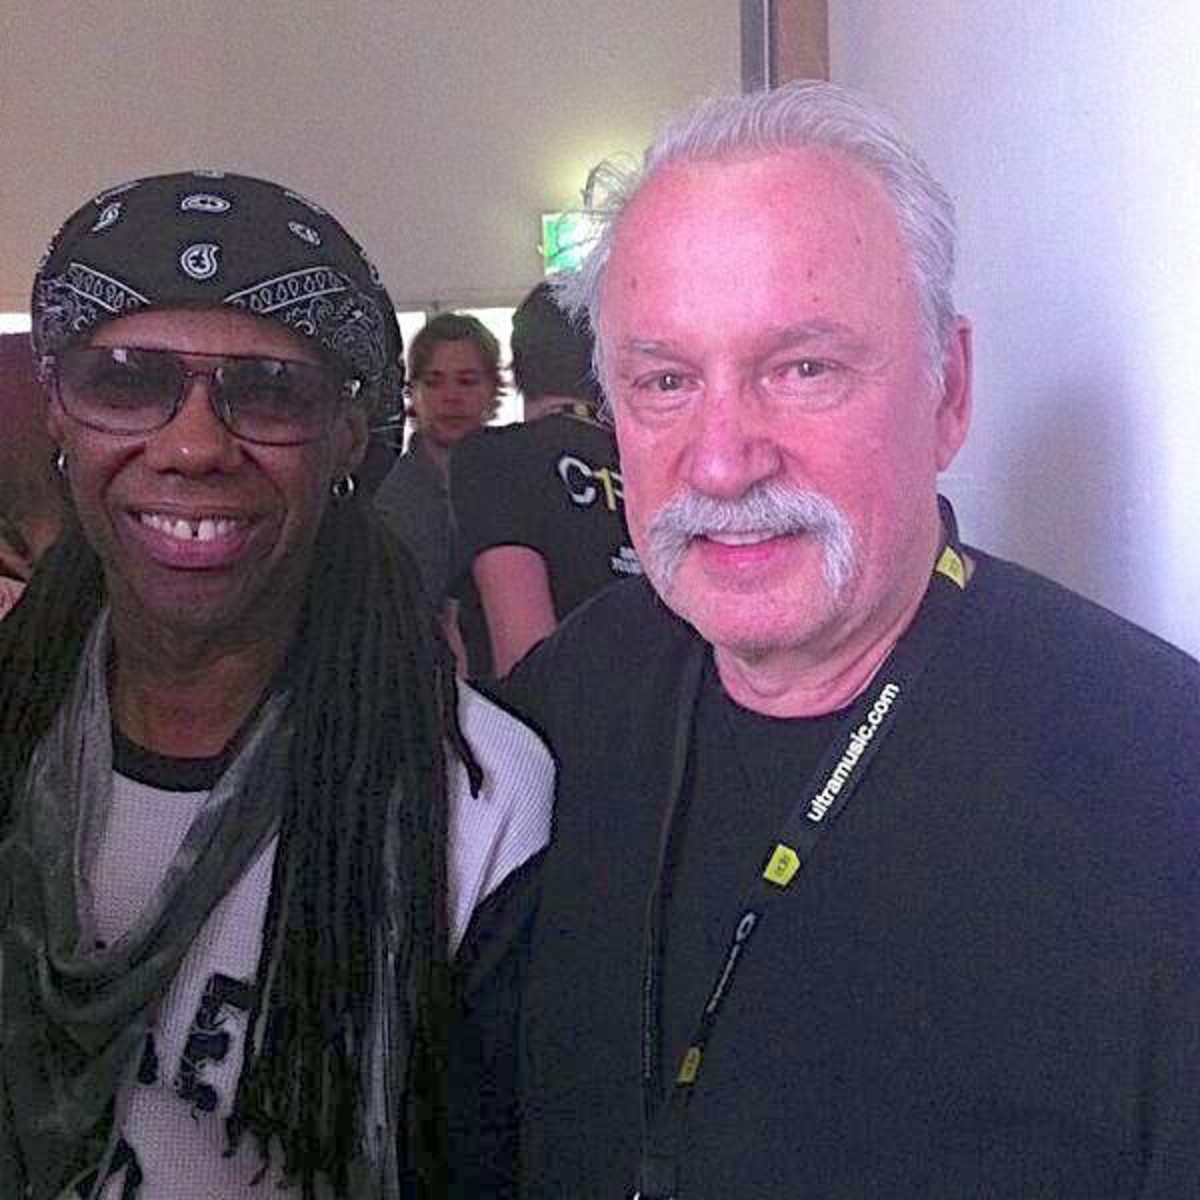 EDM News: Nile Rodgers Announces Collab With Giorgio Moroder On Twitter